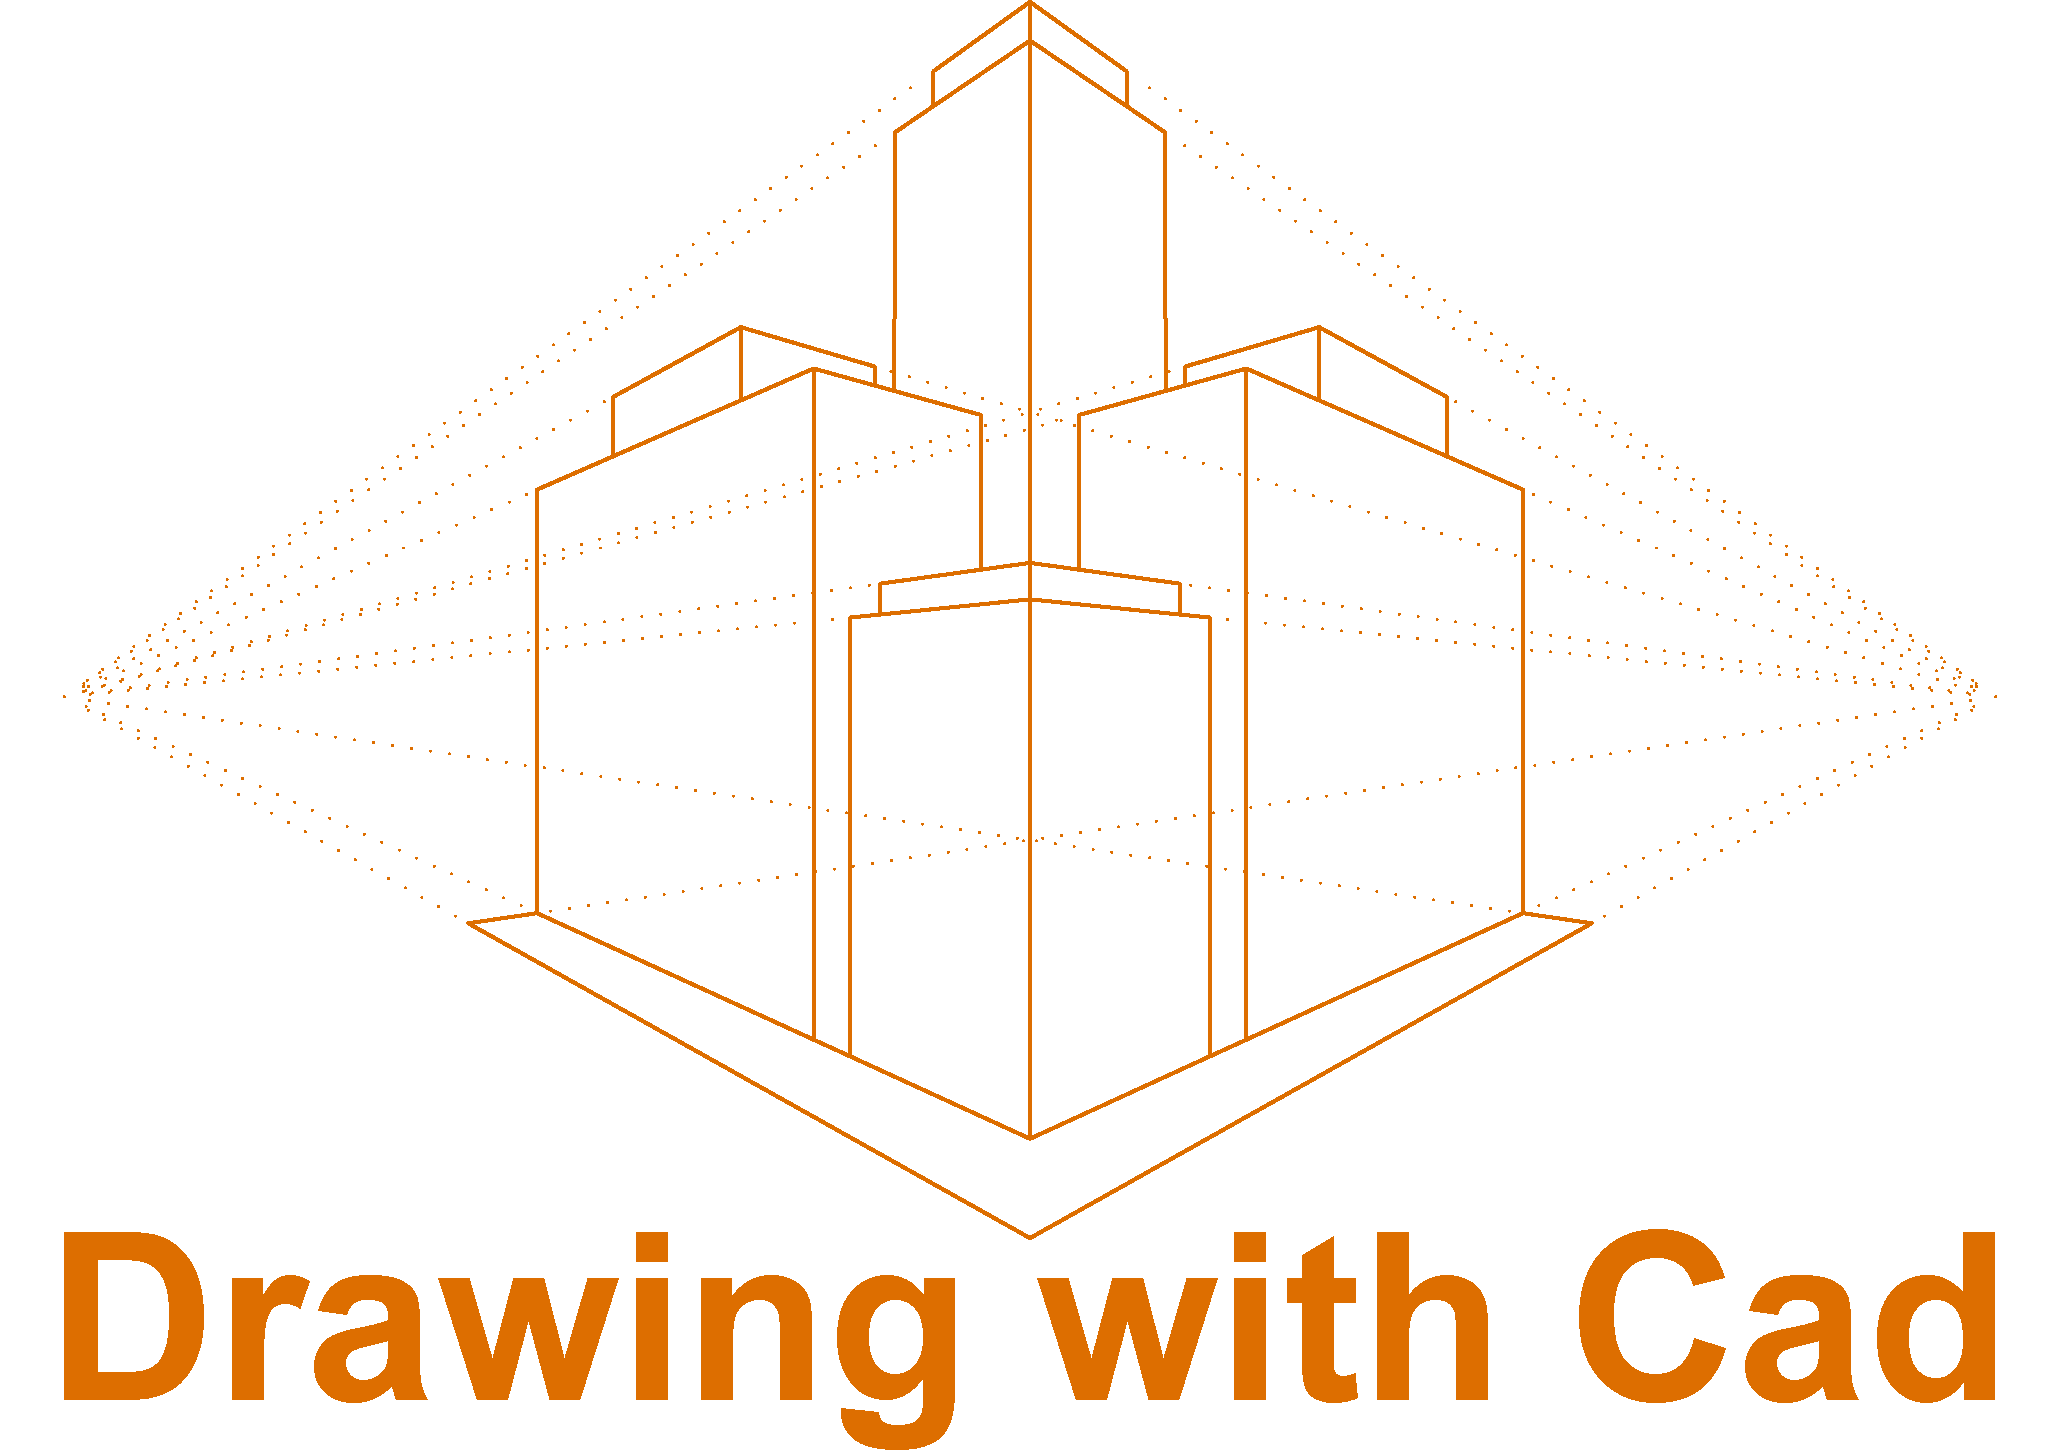 Drawing with Cad